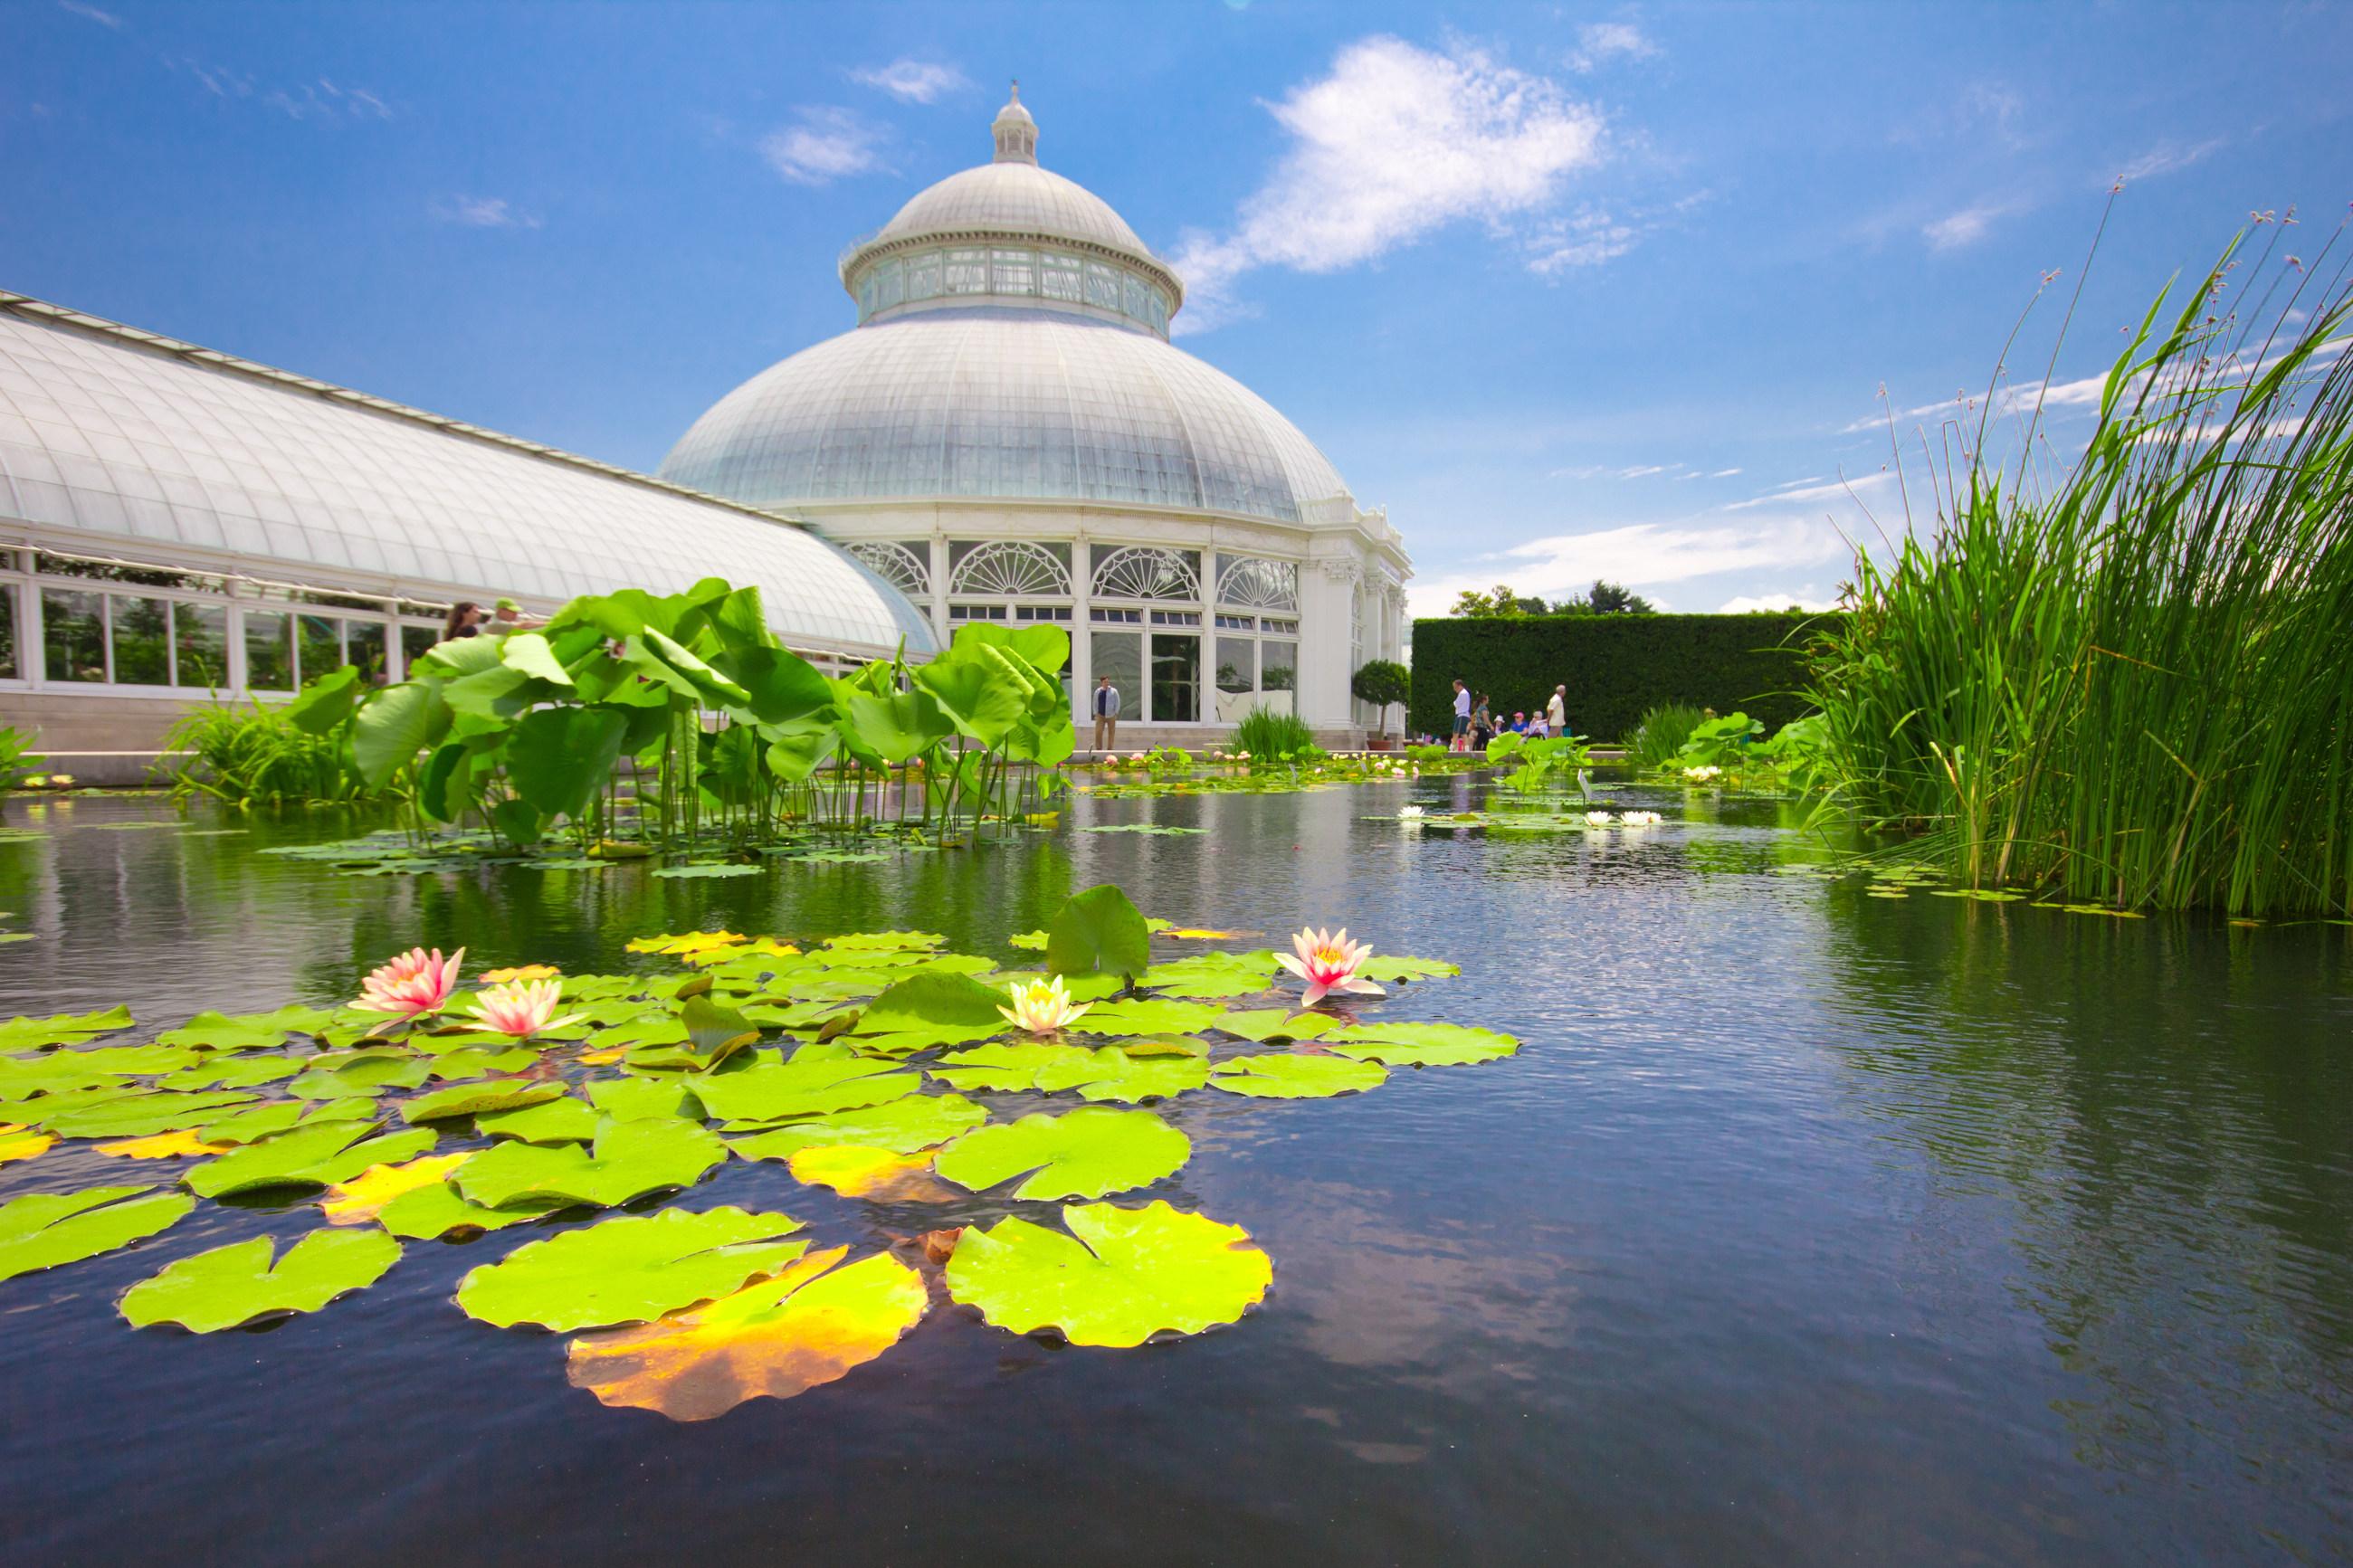 Curbed new york pocket guide spring 2017 curbed ny - New york botanical garden directions ...